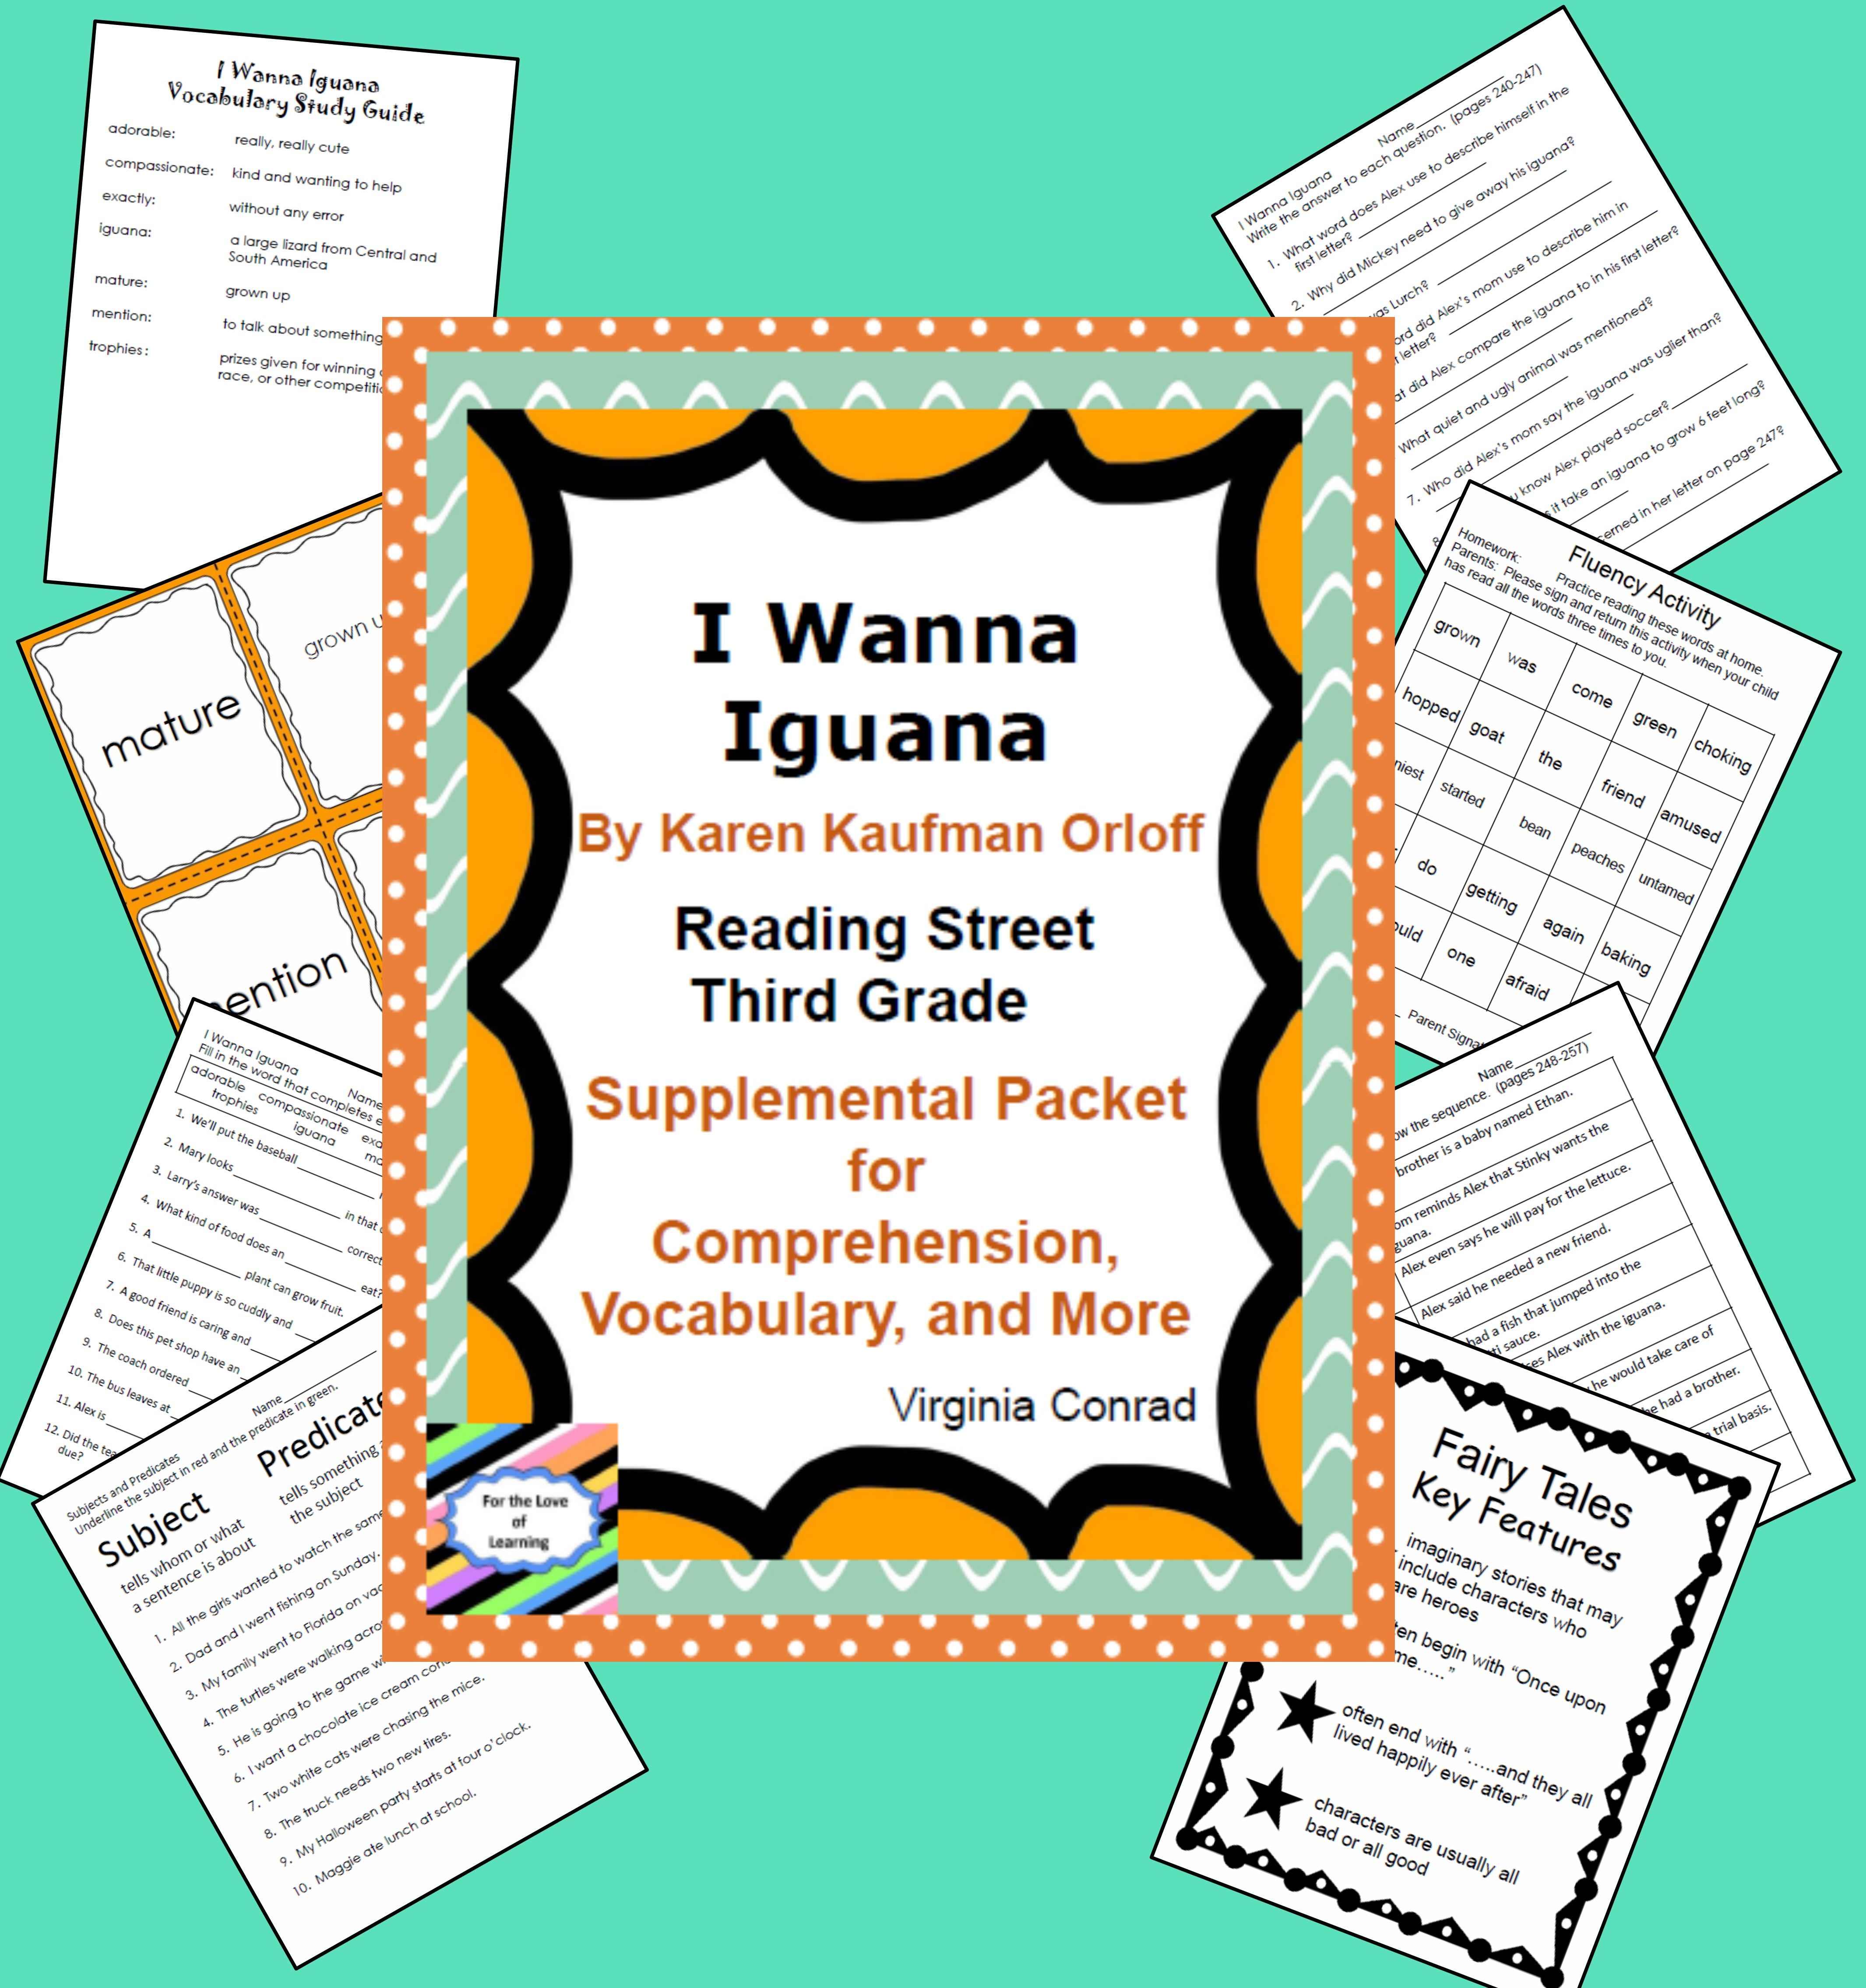 I Wanna Iguana Reading Street Supplemental Packet